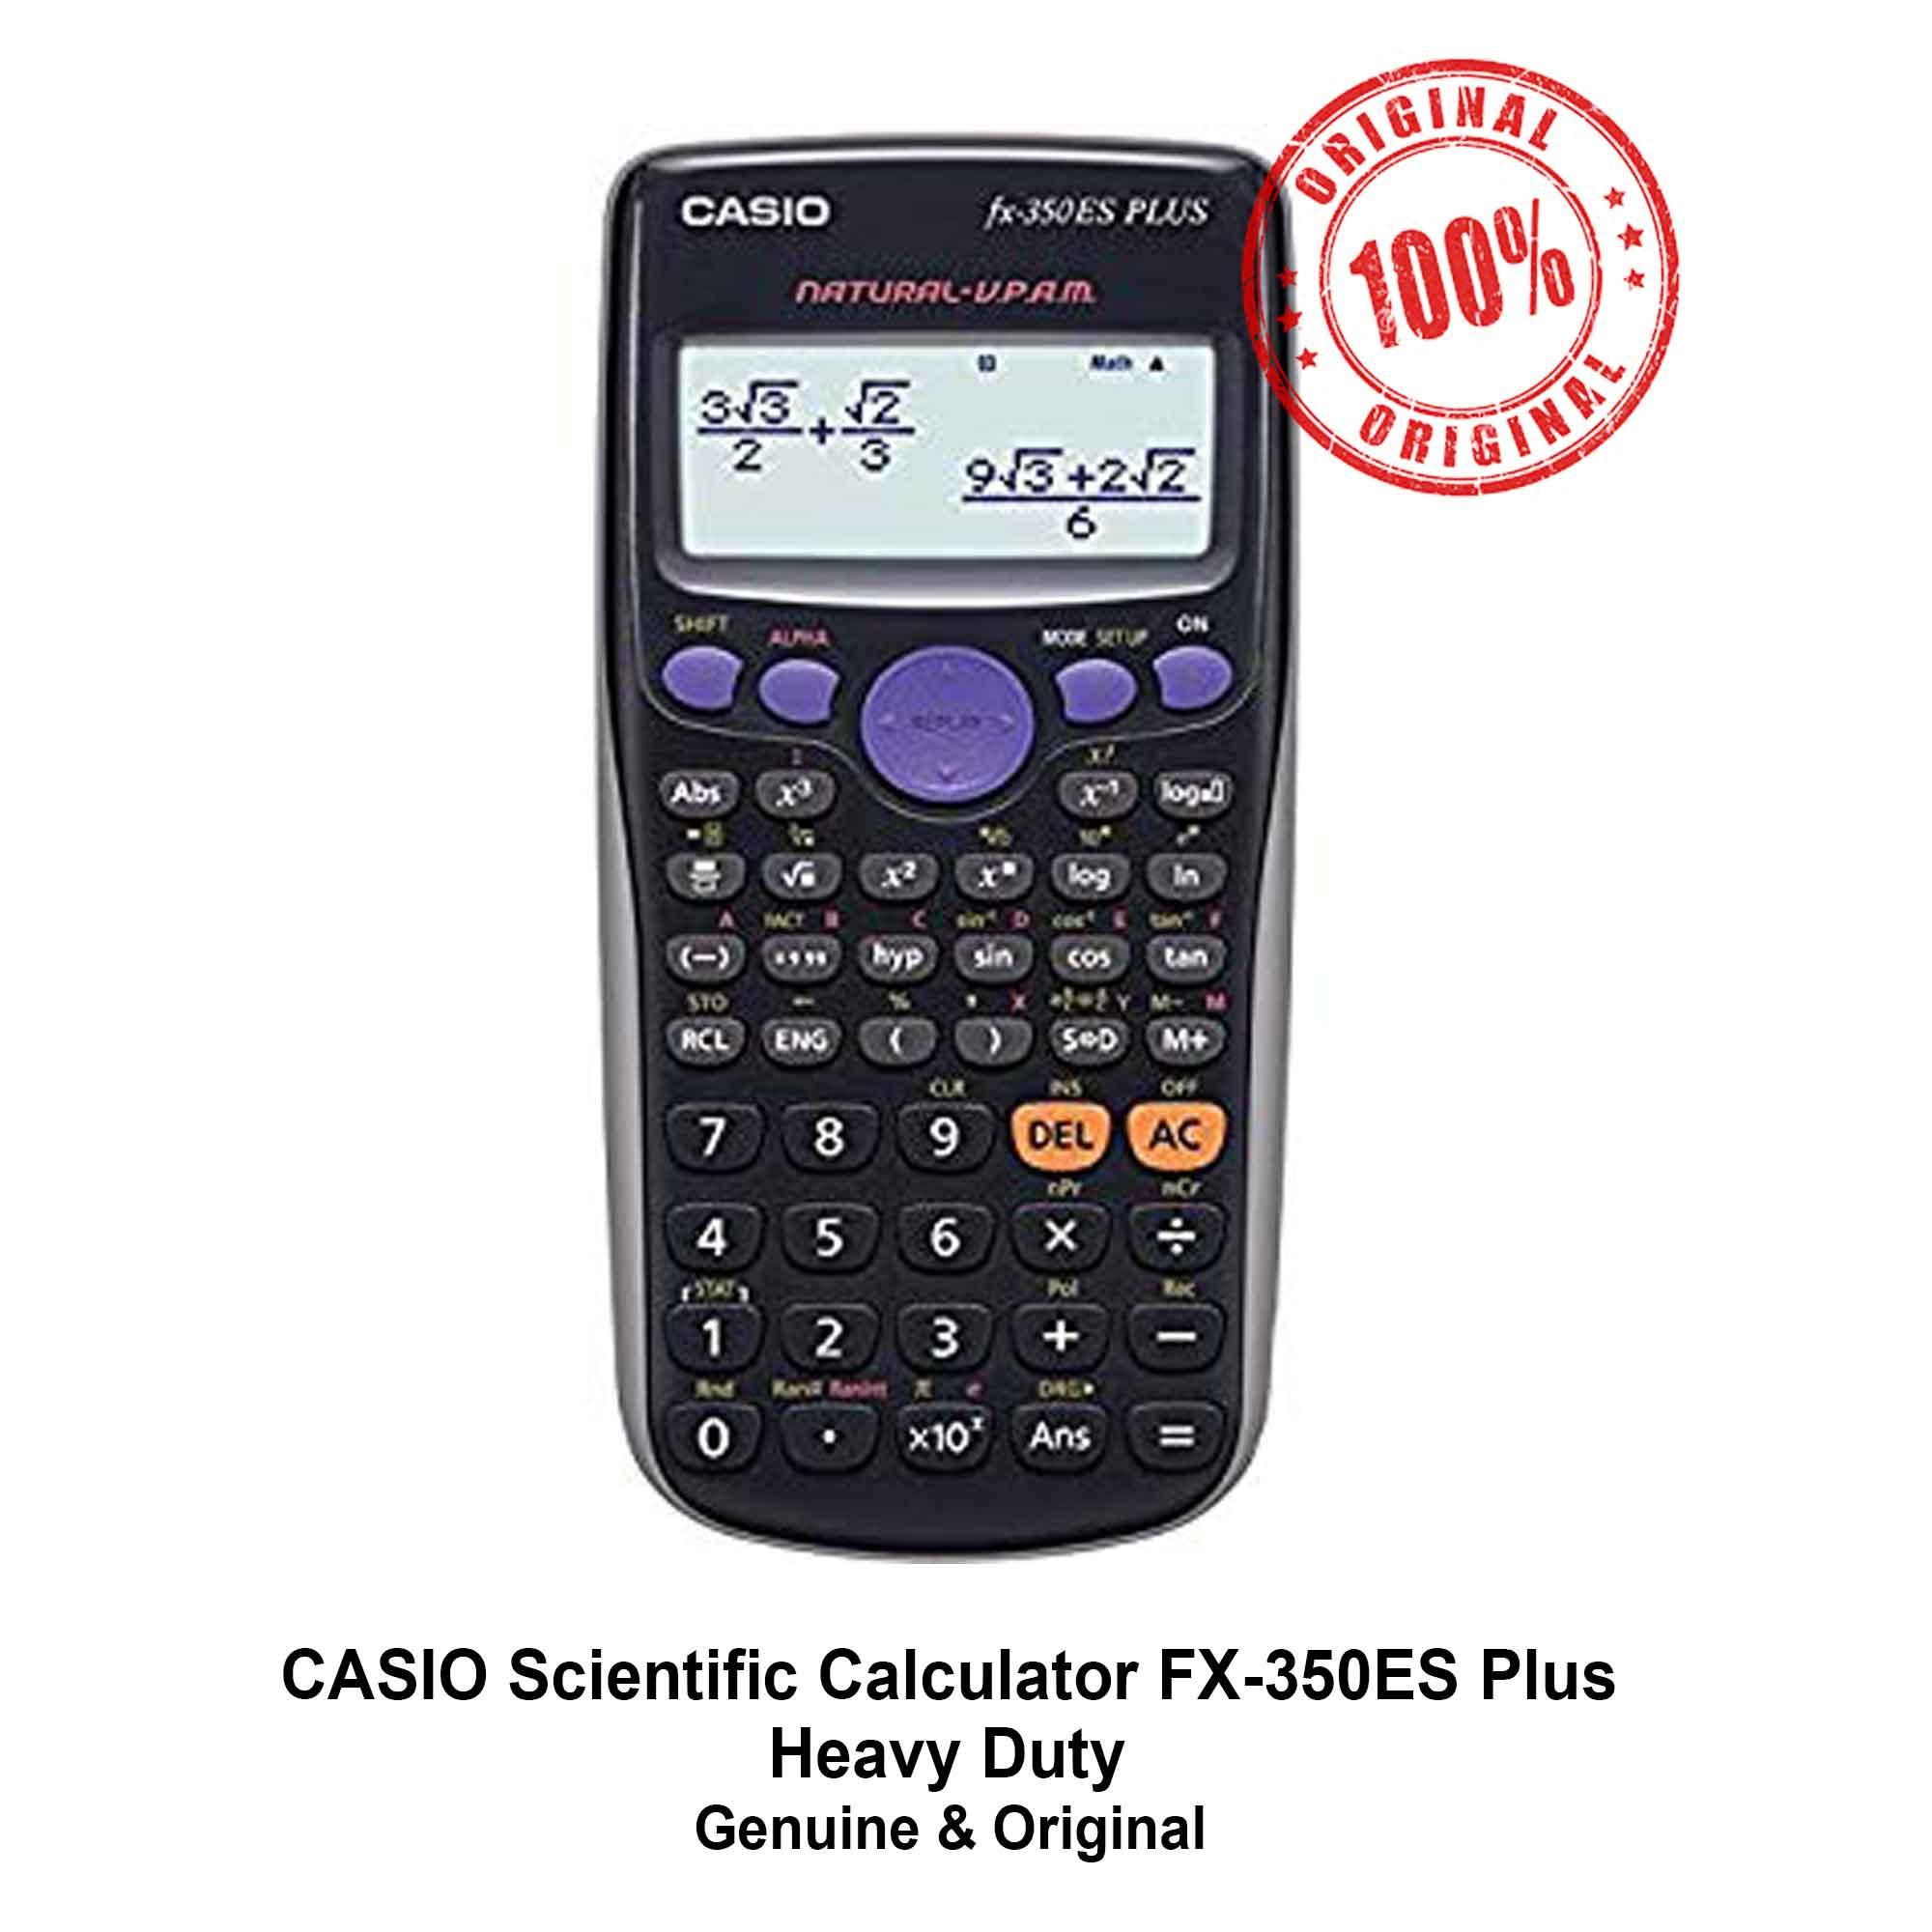 7976c4ef9a07 Casio Scientific Calculator FX-350ES Plus Calculators Heavy Duty FX350ES  Plus FX 350 ES Plus